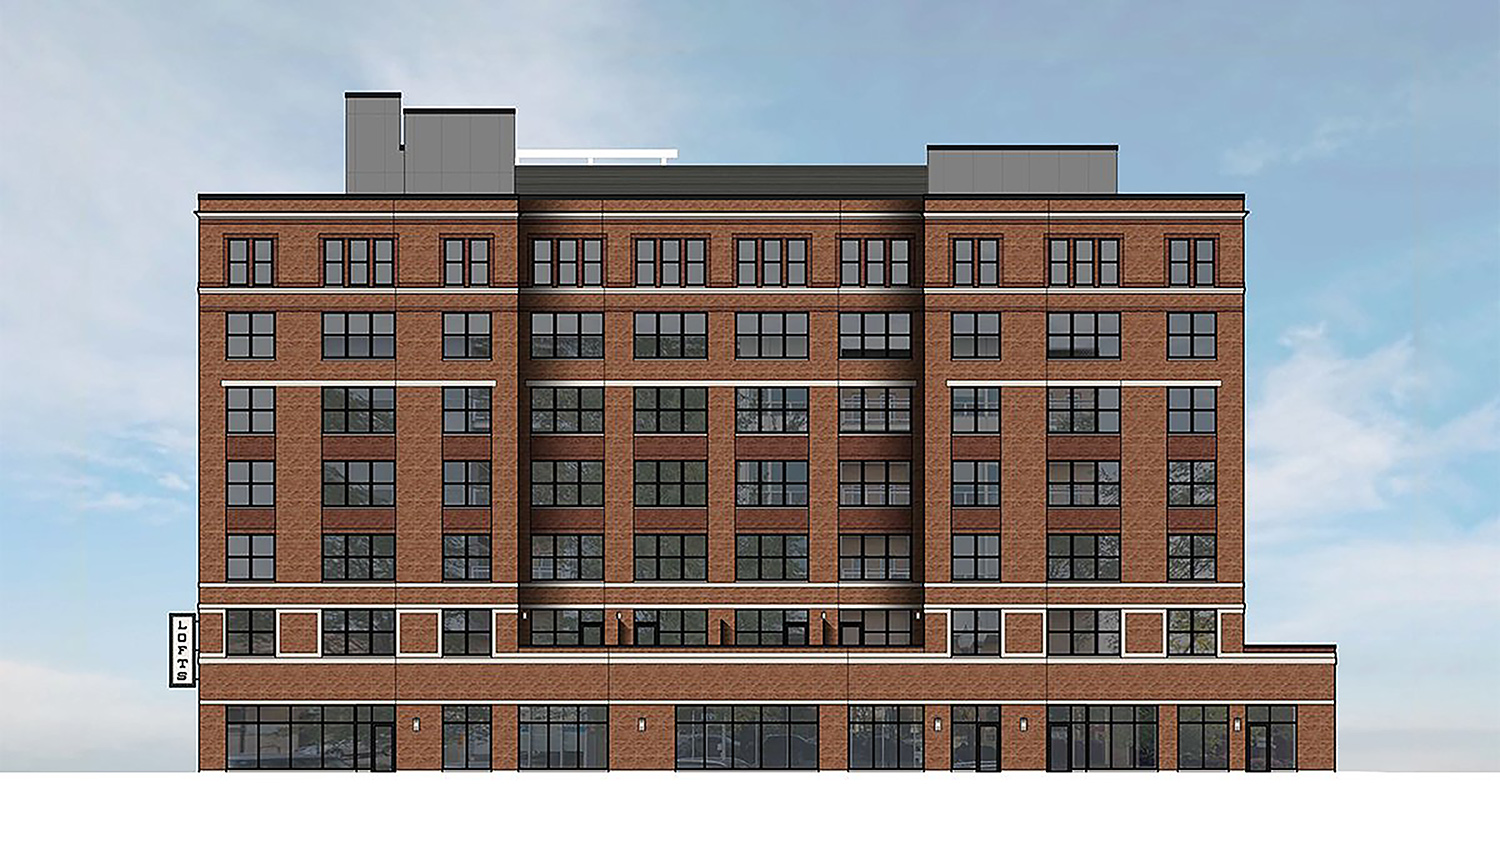 949 W Dakin Street. Rendering courtesy Draper and Kramer